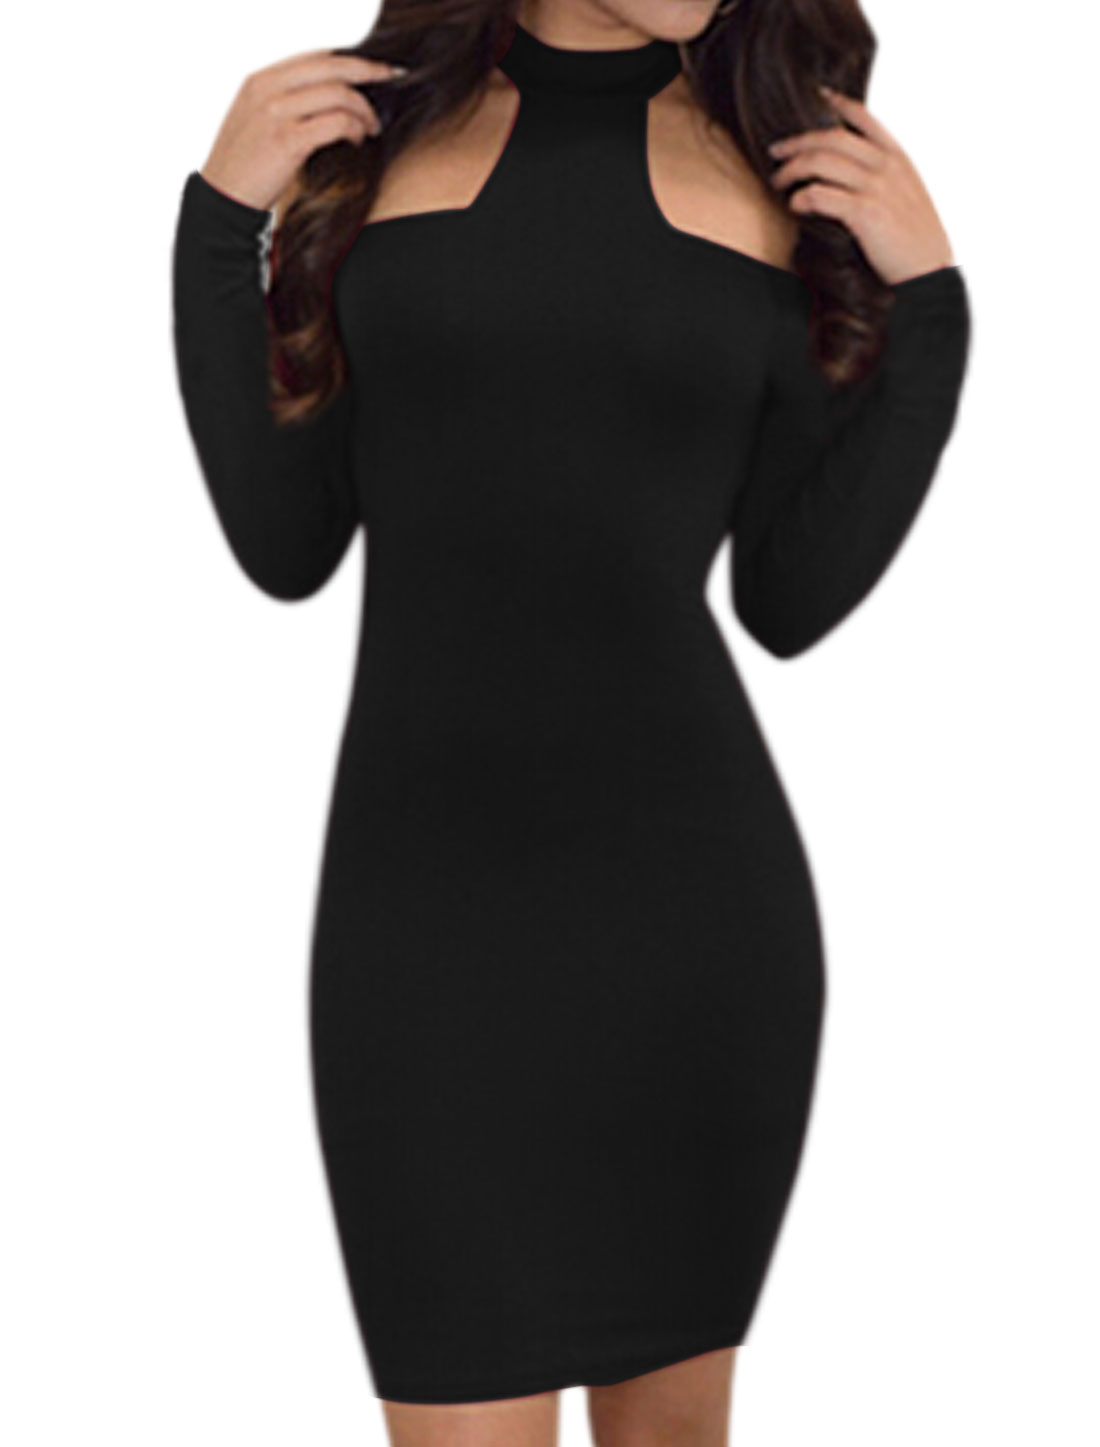 Ladies Halter Neck Cut Out Shoulder Wiggle Dress Black M